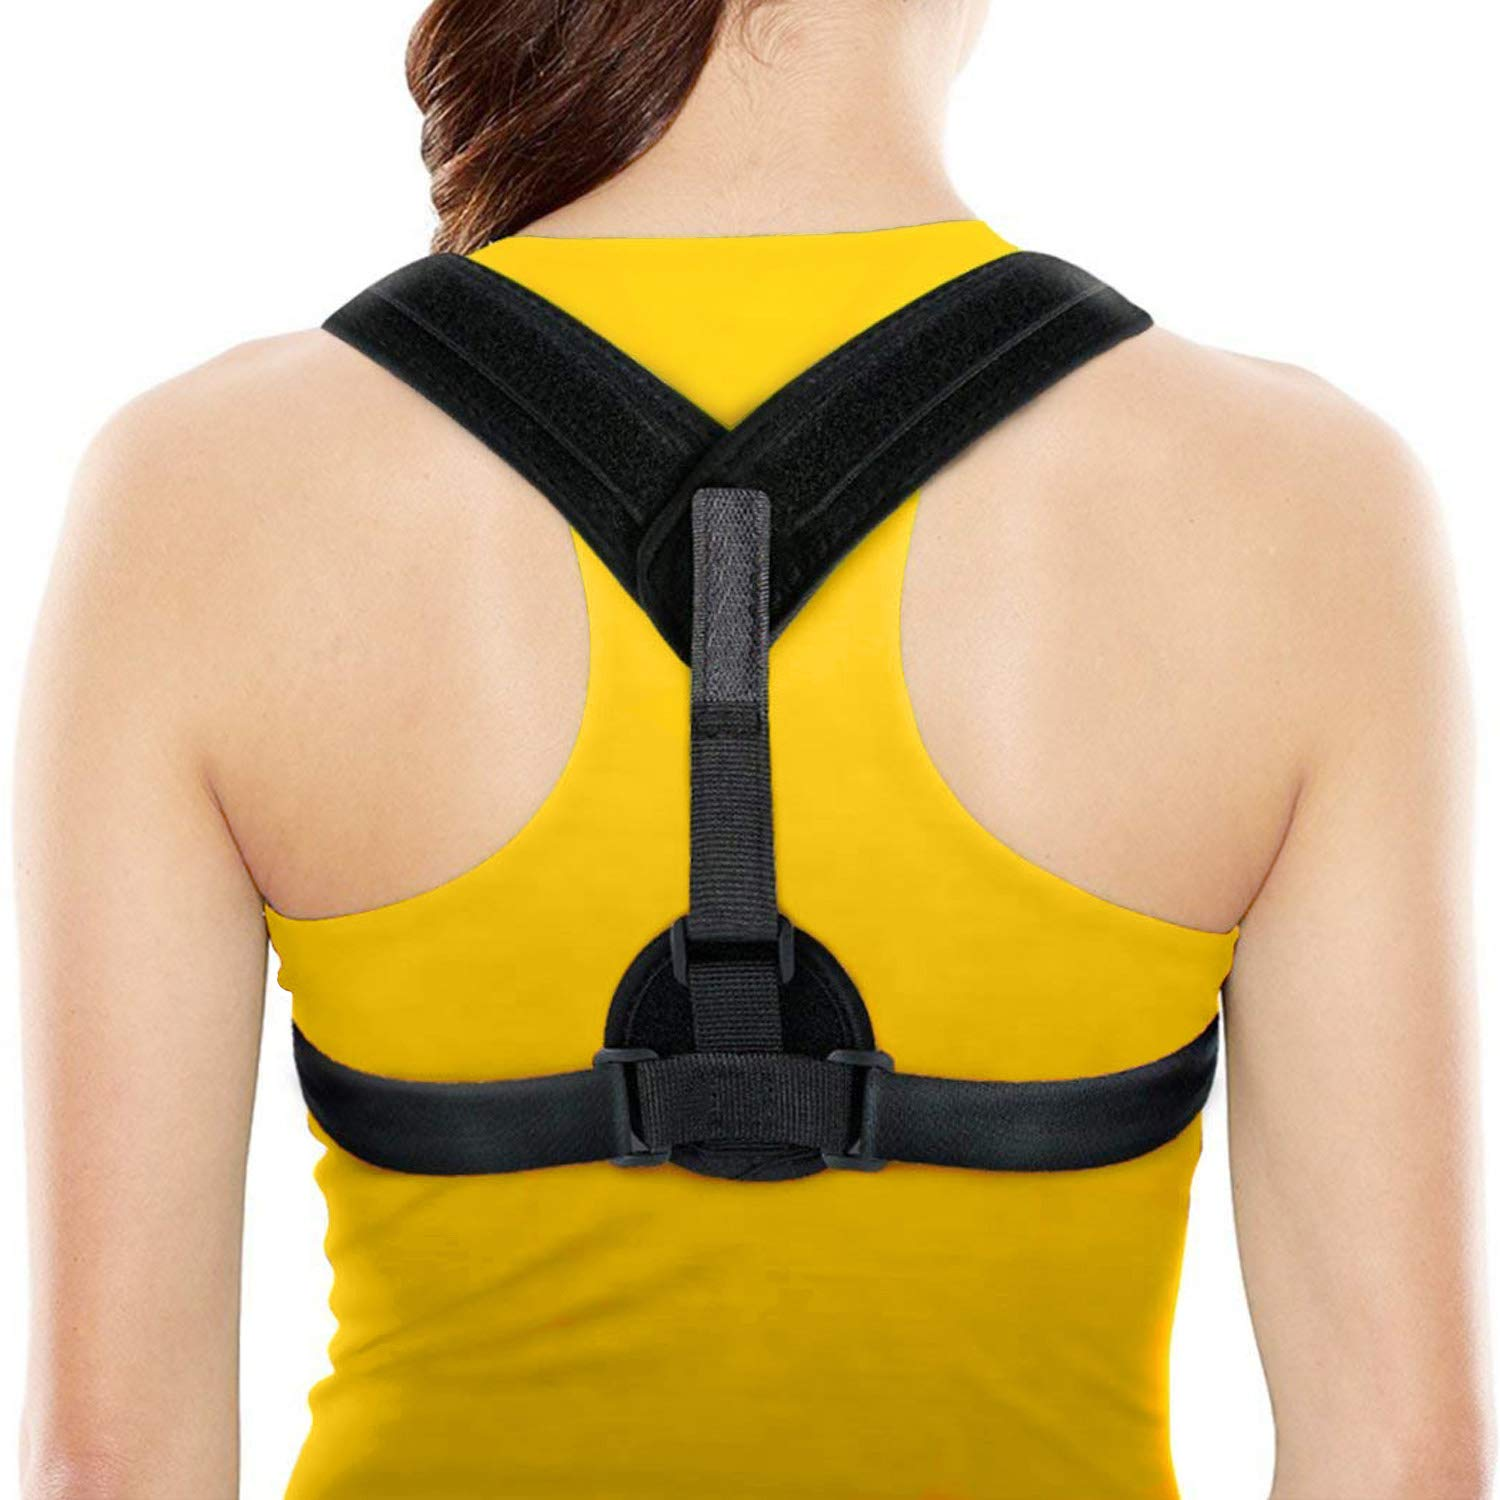 Mxpillar Posture Corrector for Women Men,Adjustable-Free Size Straps,Comfortable and Effective Physical Therapy Clavicle Brace-Upper Back,Shoulder Pain Relief